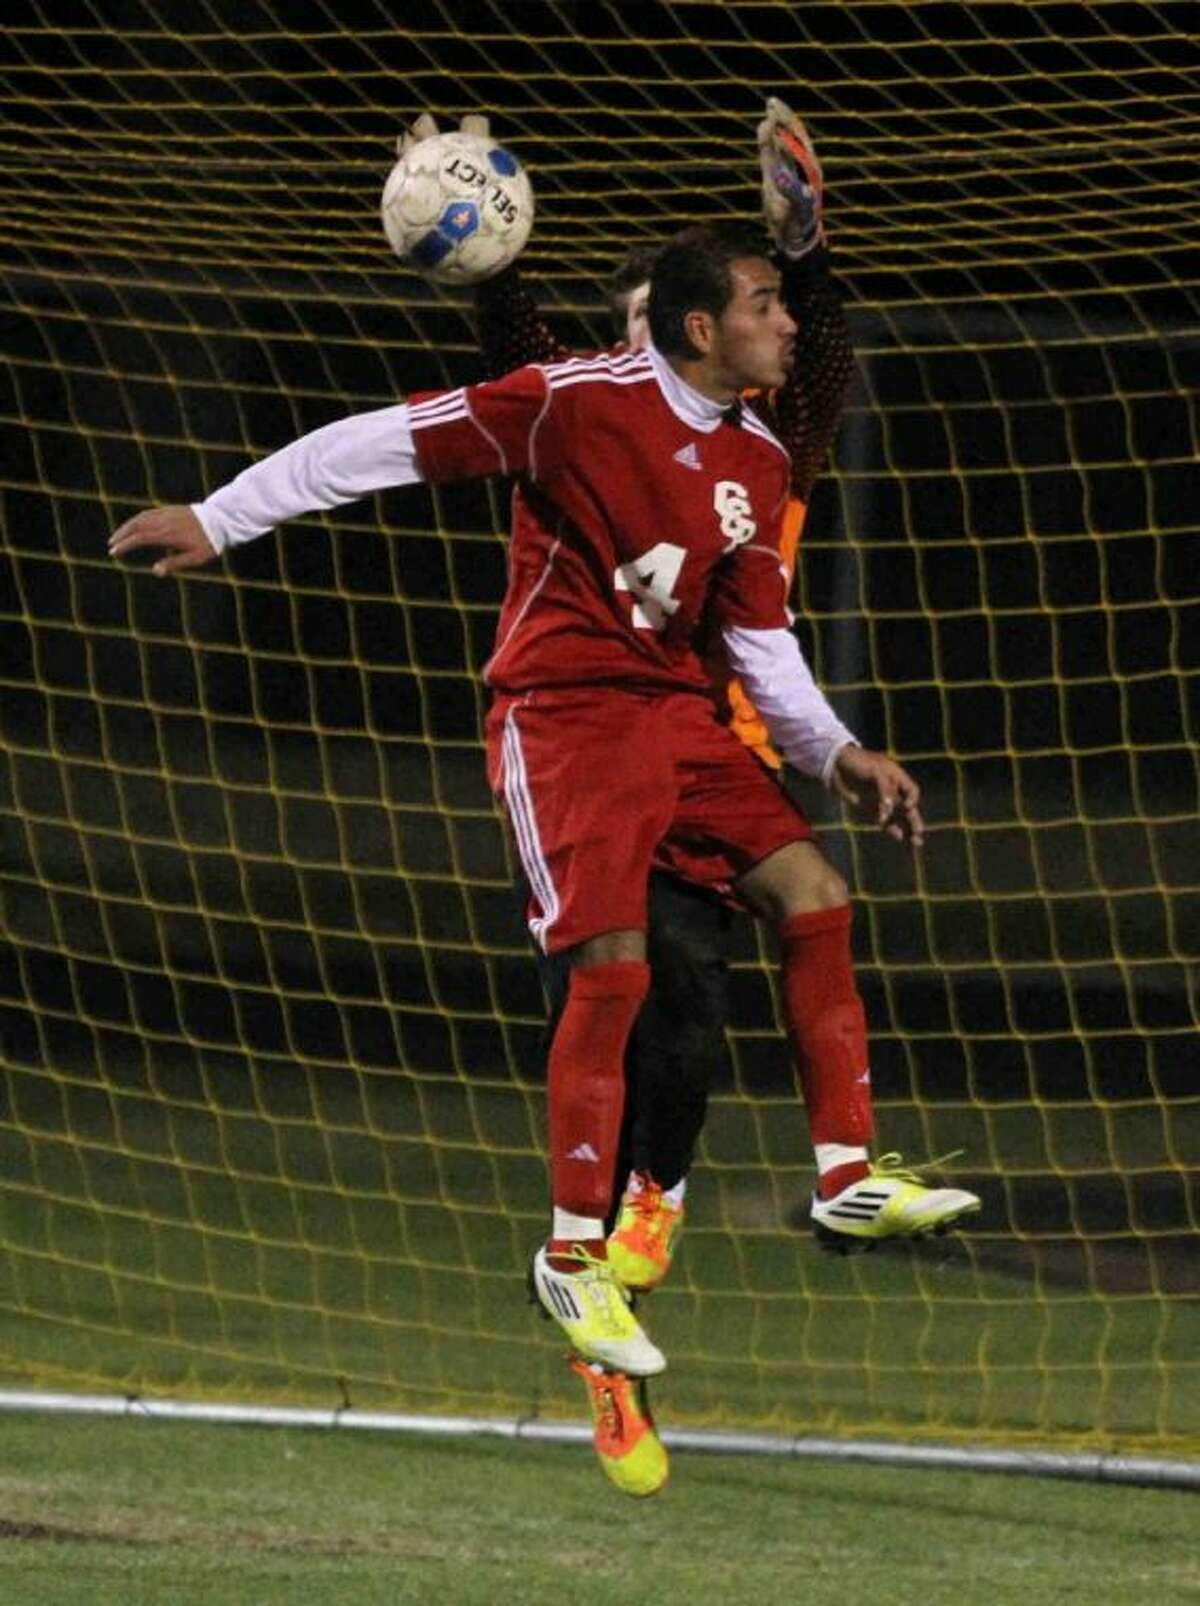 Caney Creek's Francisco Lopez tries to head the ball in for a score during Friday's match at Montgomery High School. To view or purchase this photo and others like it, visit HCNpics.com.